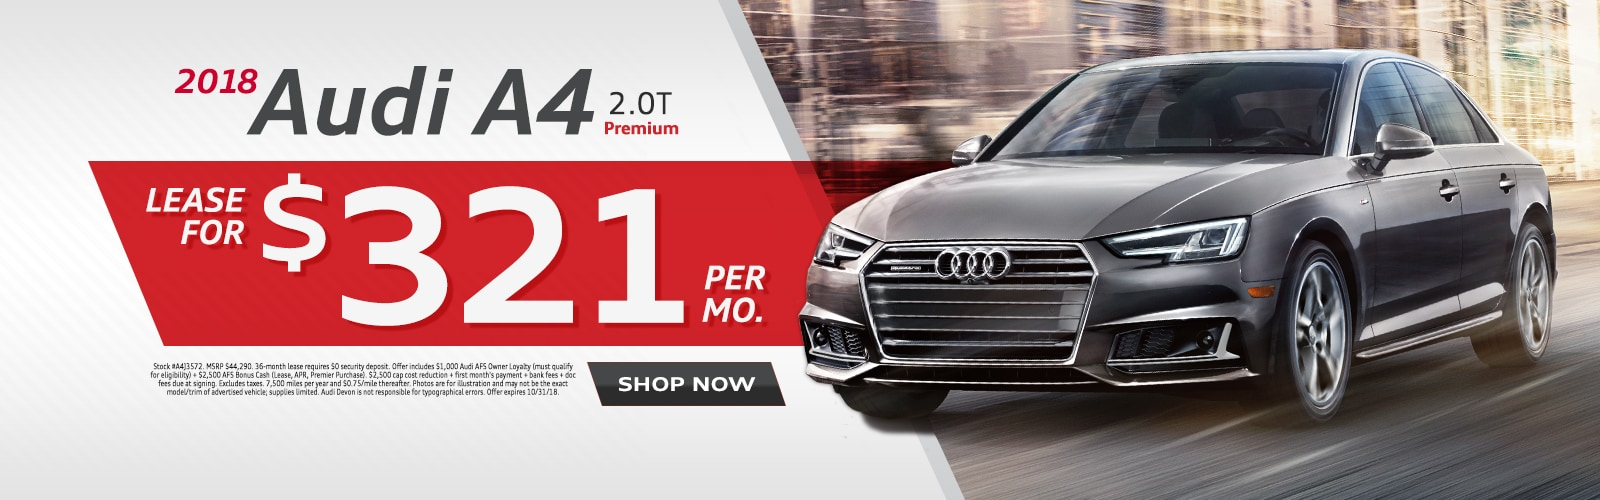 audi lease deals near me | audi devon pa